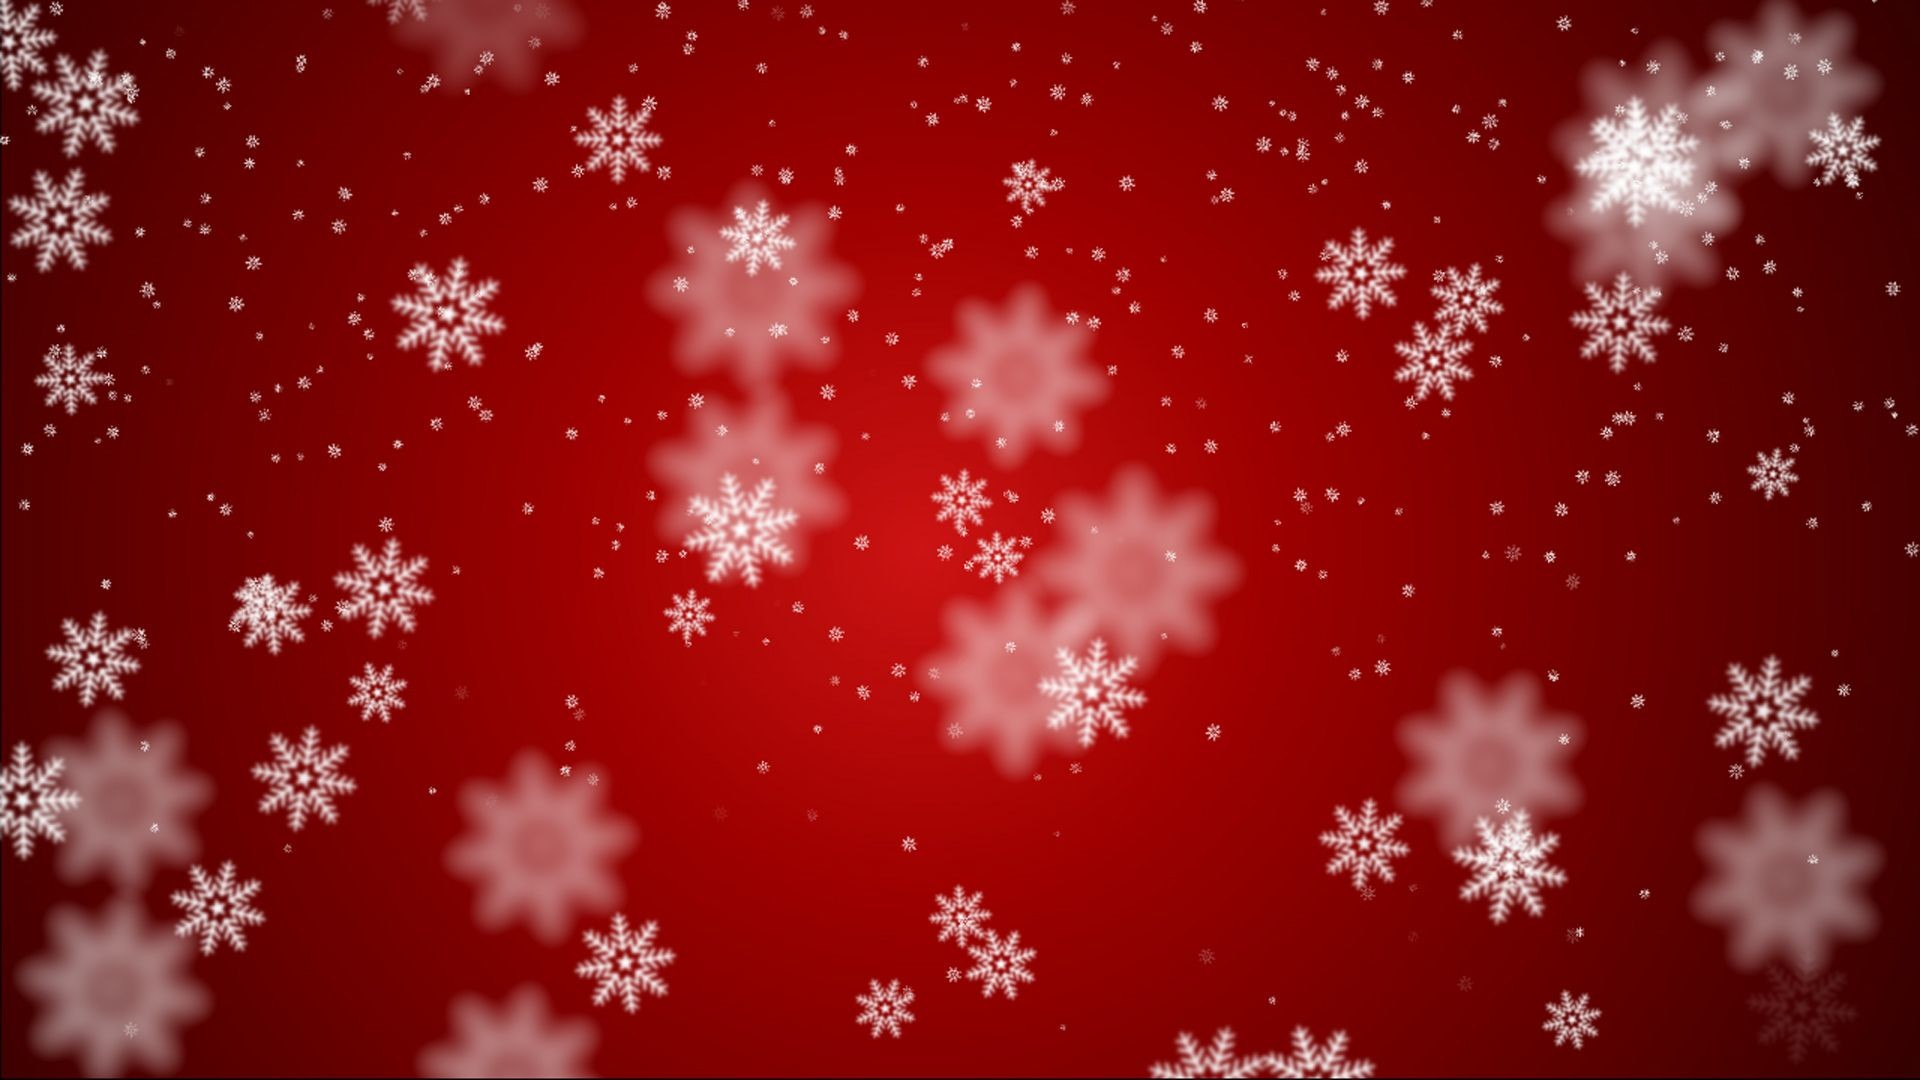 Free Christmas PowerPoint Backgrounds/Wallpapers Download – PPT .